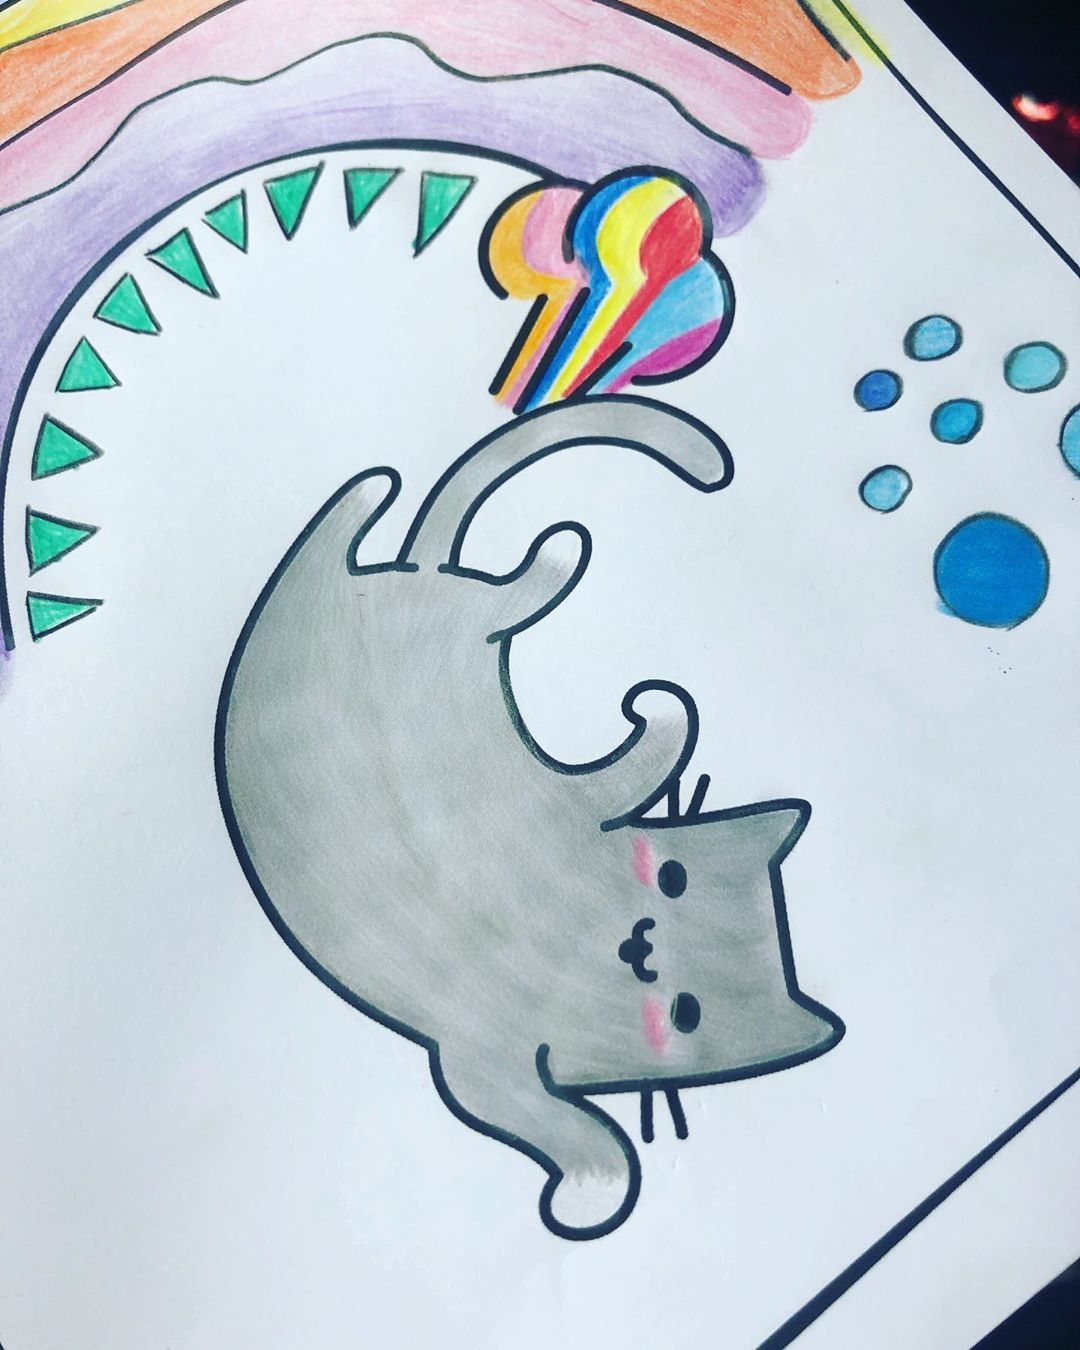 Omg I Have Bought A Colouring Book Cute Cats Farting It Is Amazing I M So Happy About My Rainbow Farting Cat Cat Day Coloring Books Cute Cats